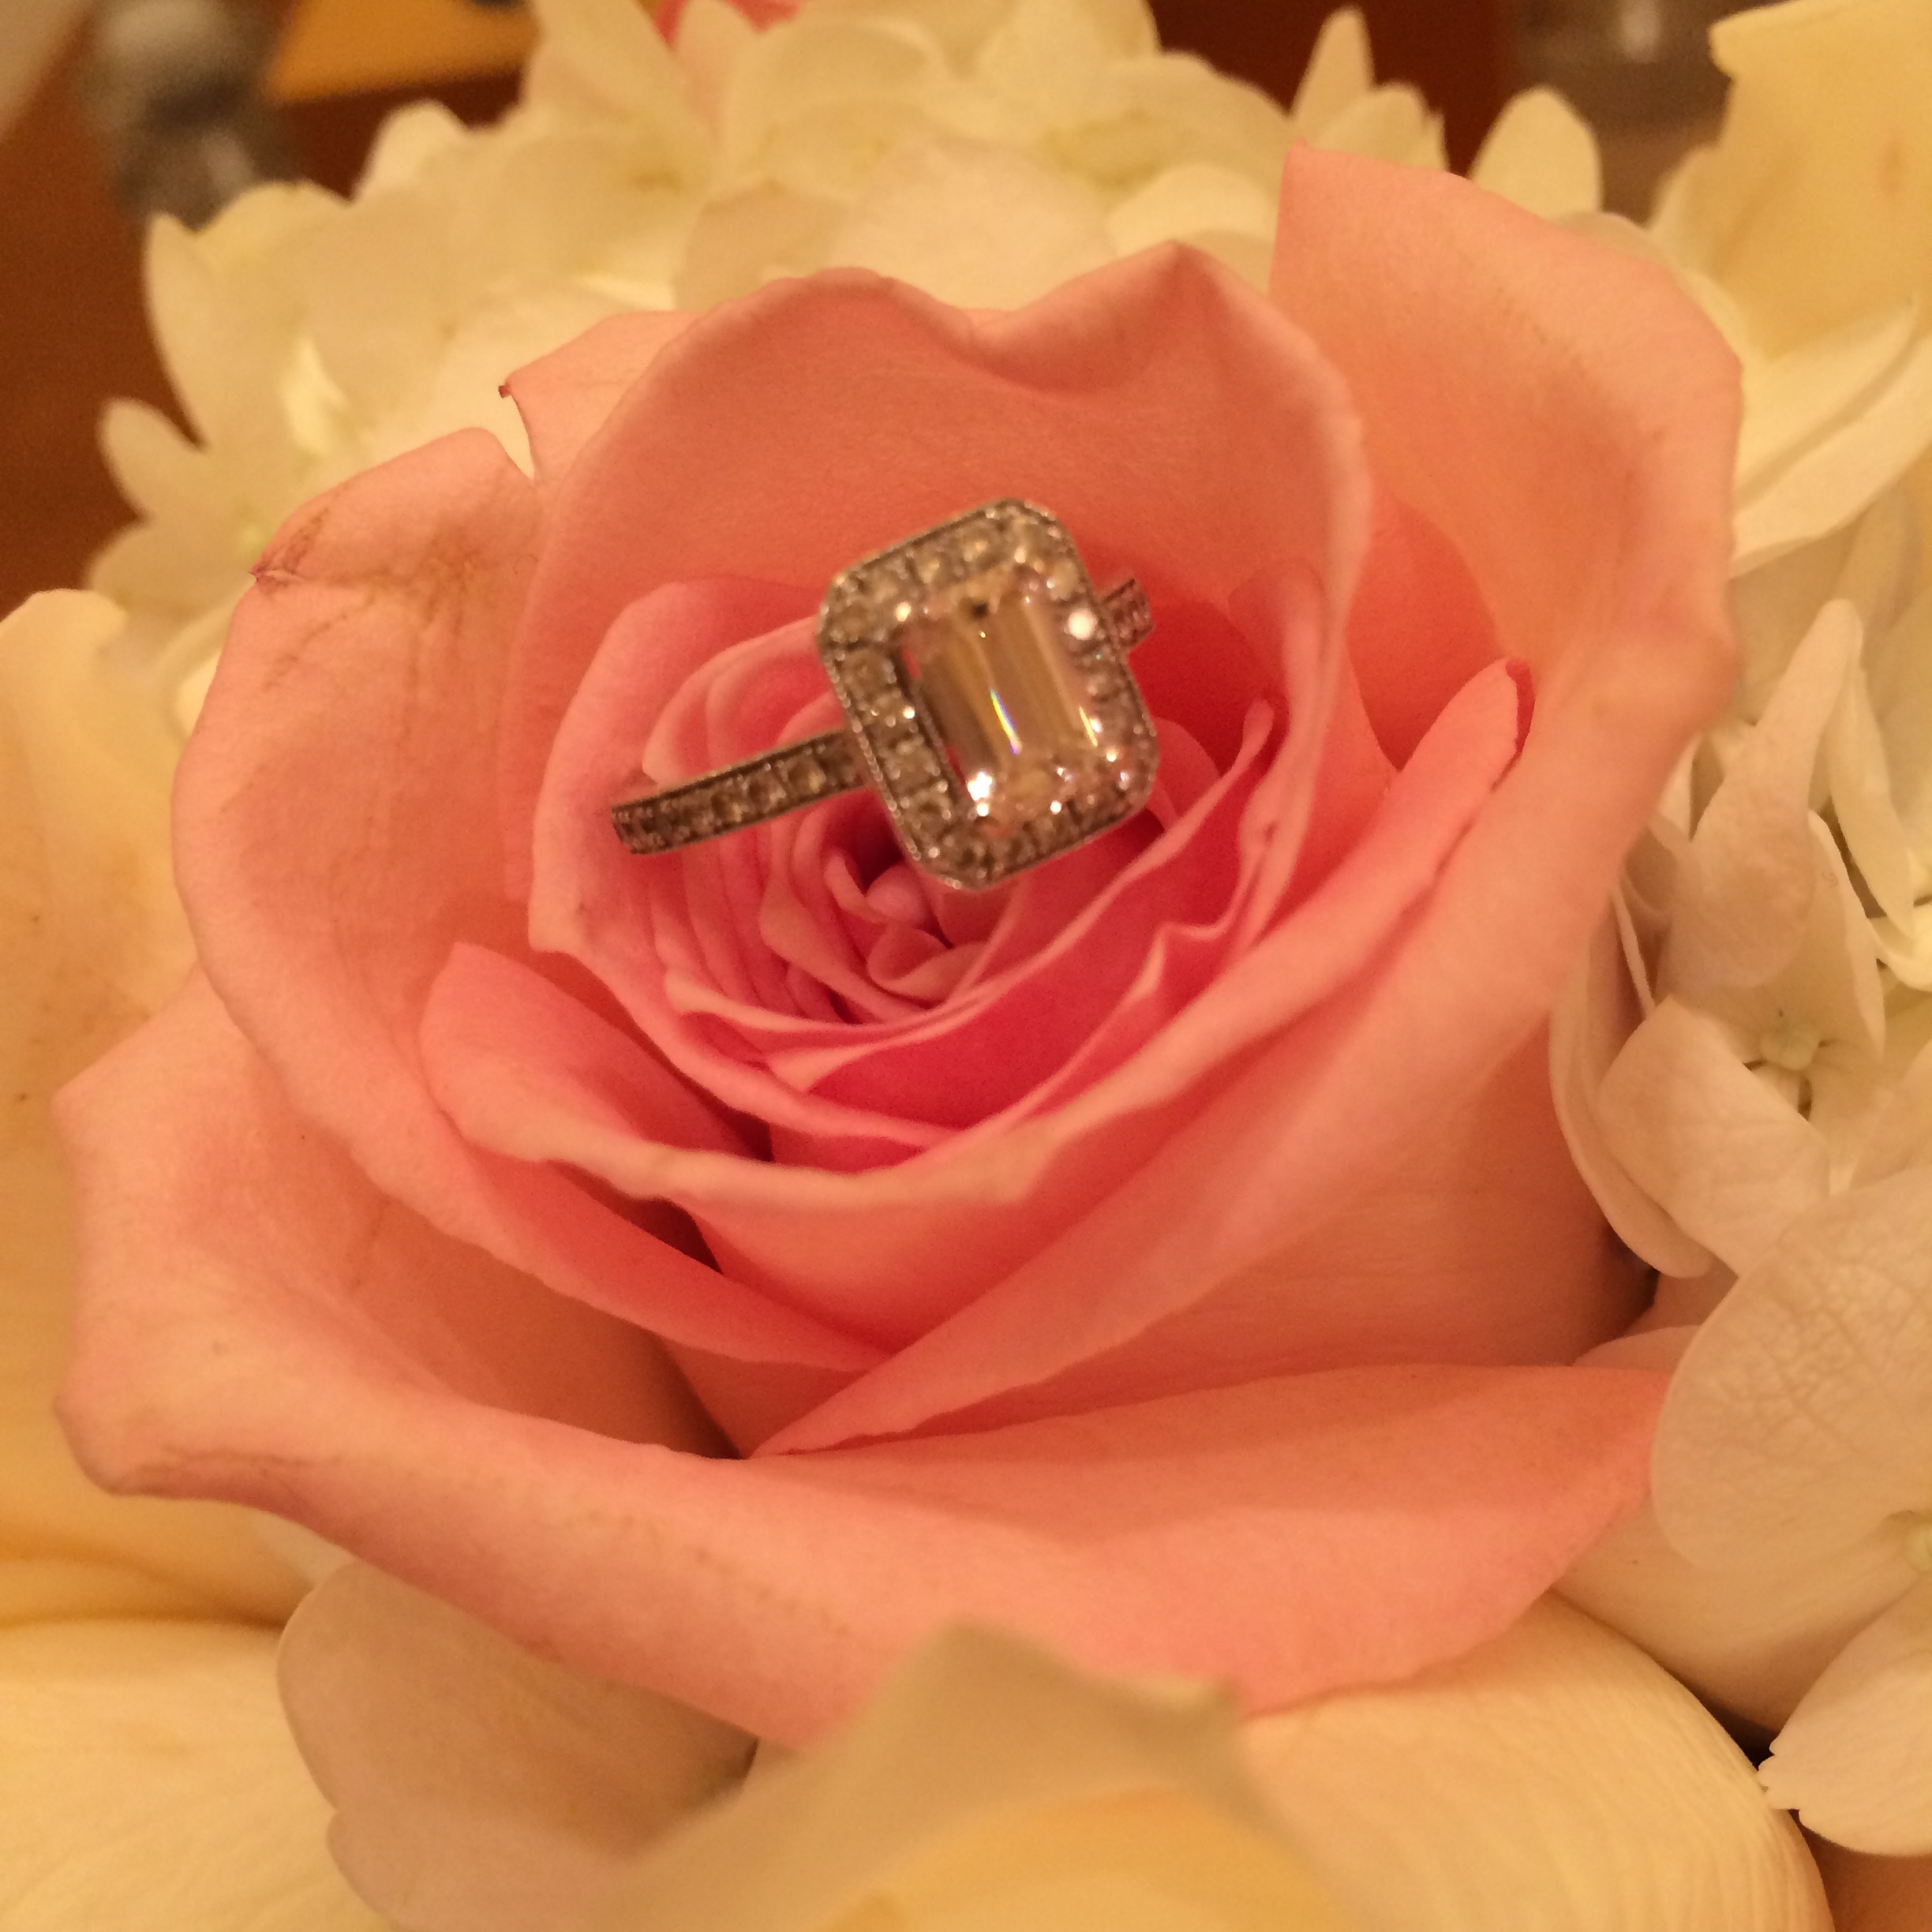 Michele's emerald cut engagement ring with halo sat nestled in her bridal bouquet.